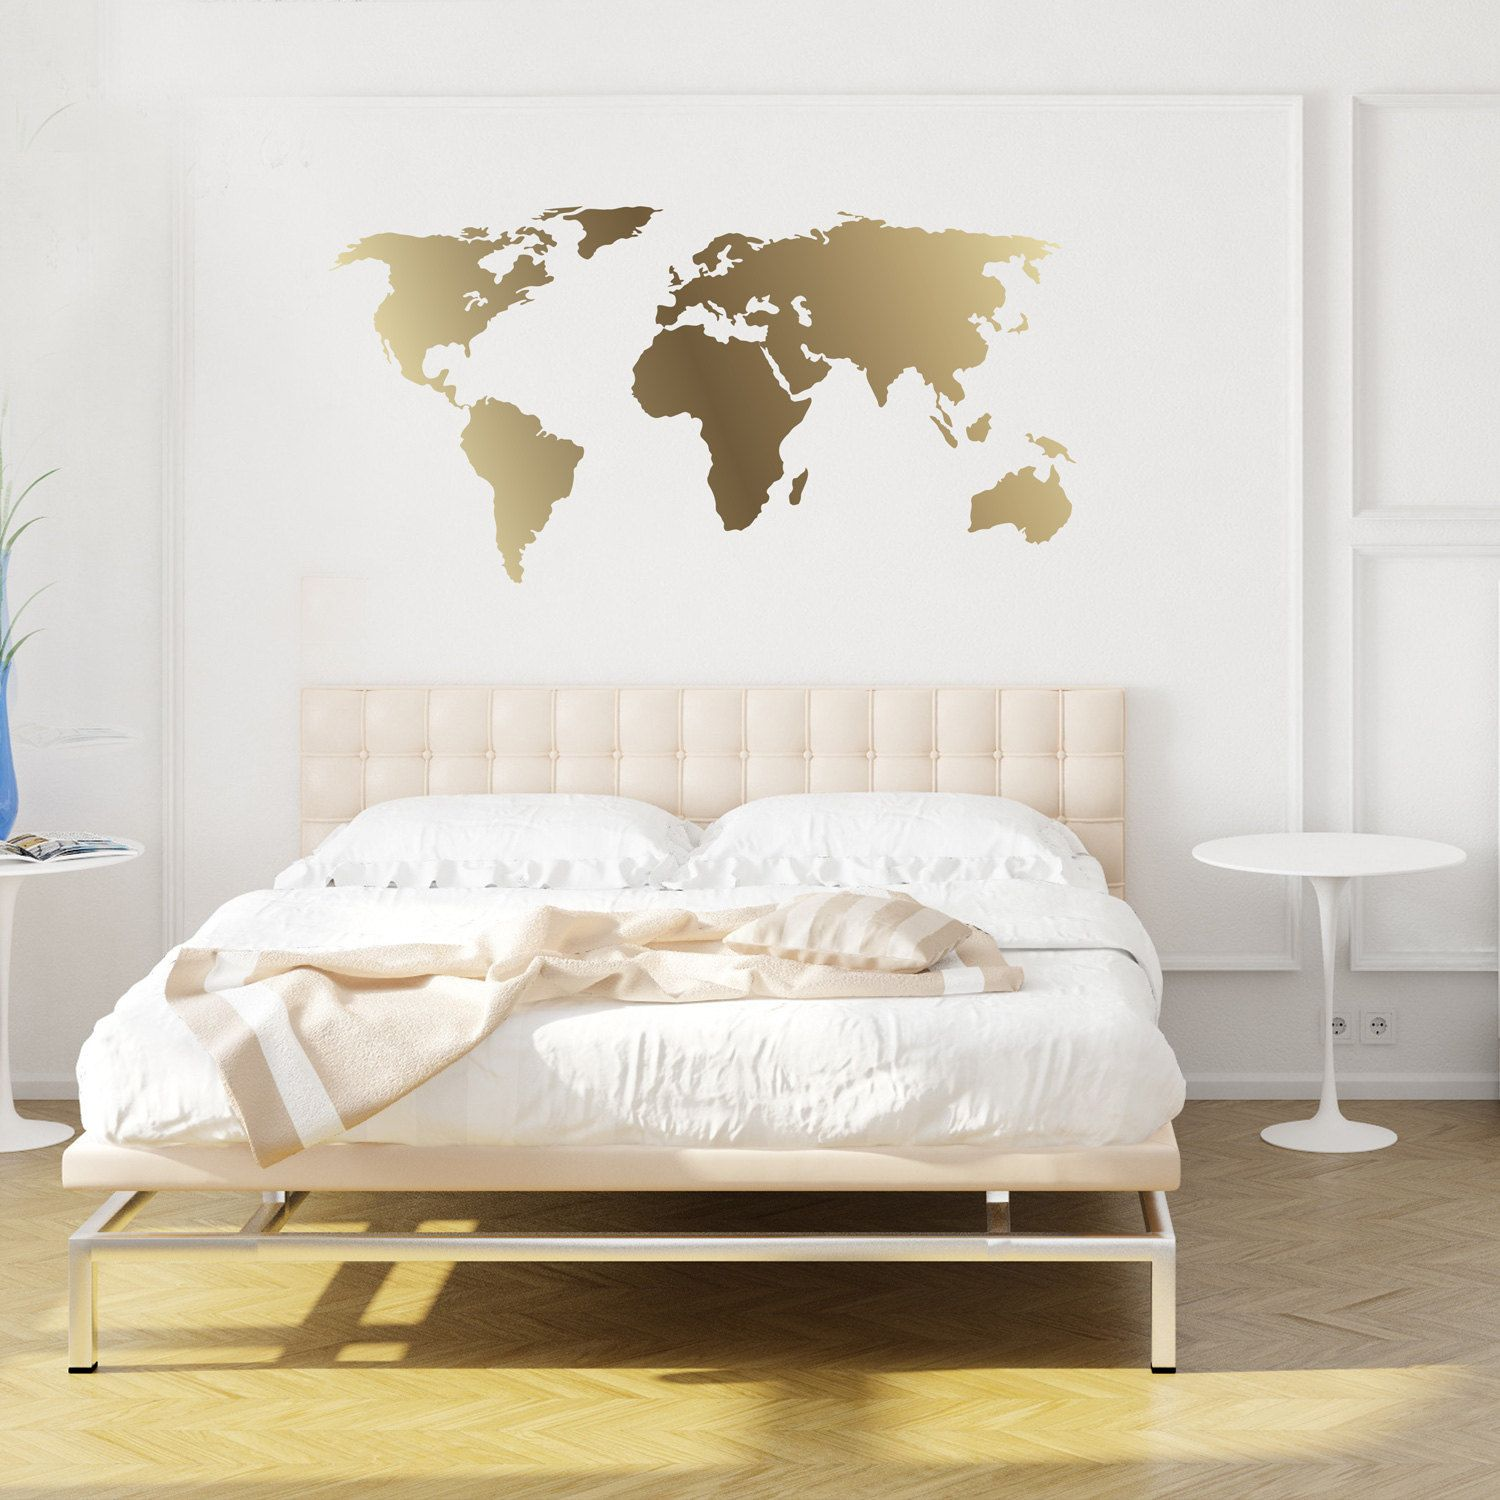 World map decal gold kiss cut world decal by chromantics by world map decal gold kiss cut world decal by chromantics by chromantics on etsy mirror decalwall gumiabroncs Images